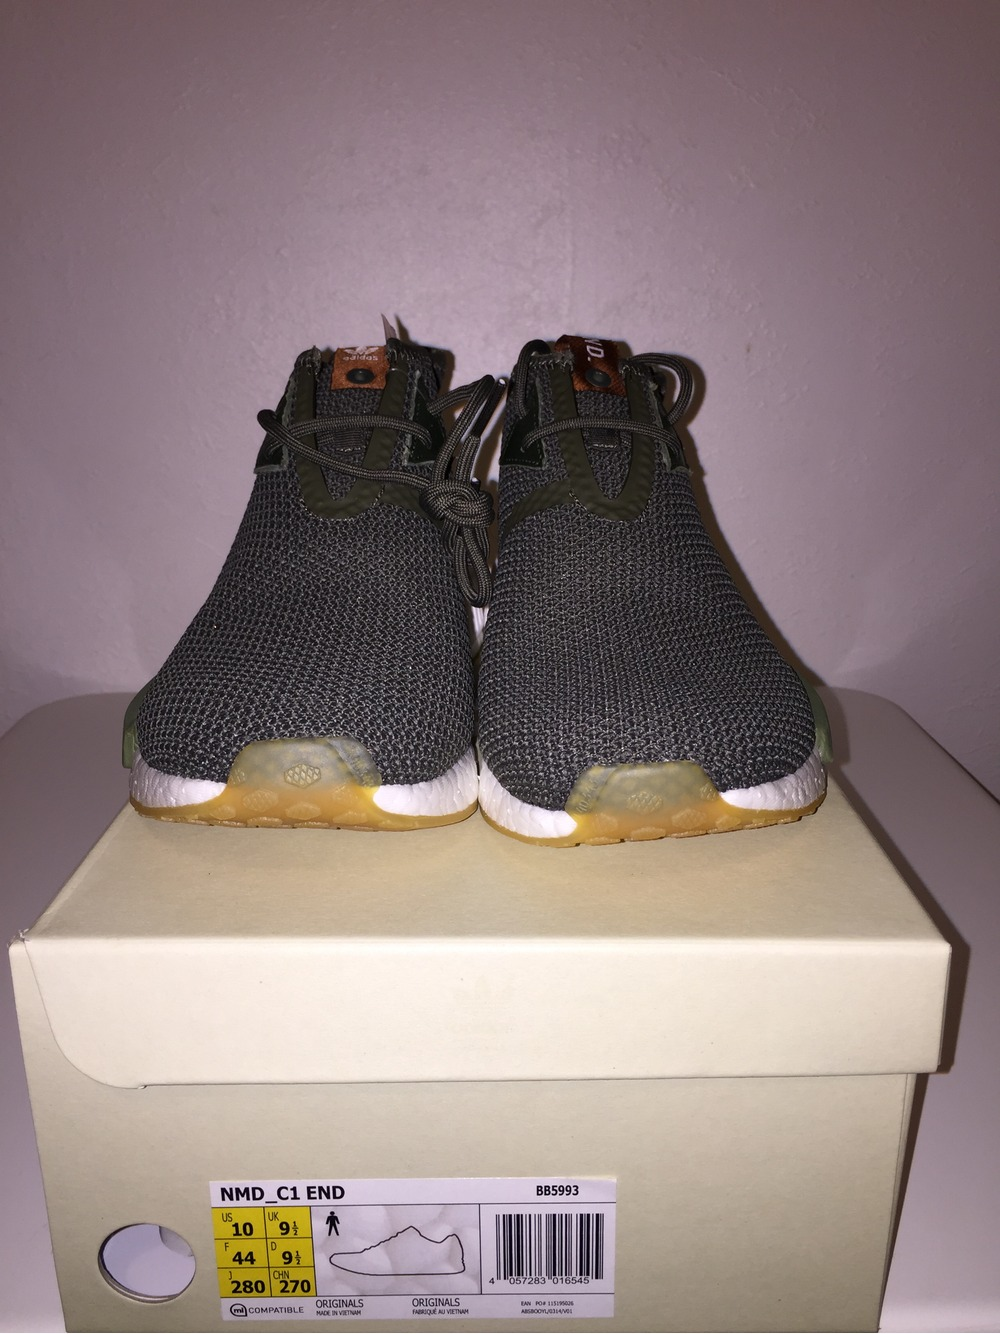 End Clothing x Adidas Consortium NMD C1 Chukka 8 10 Olive